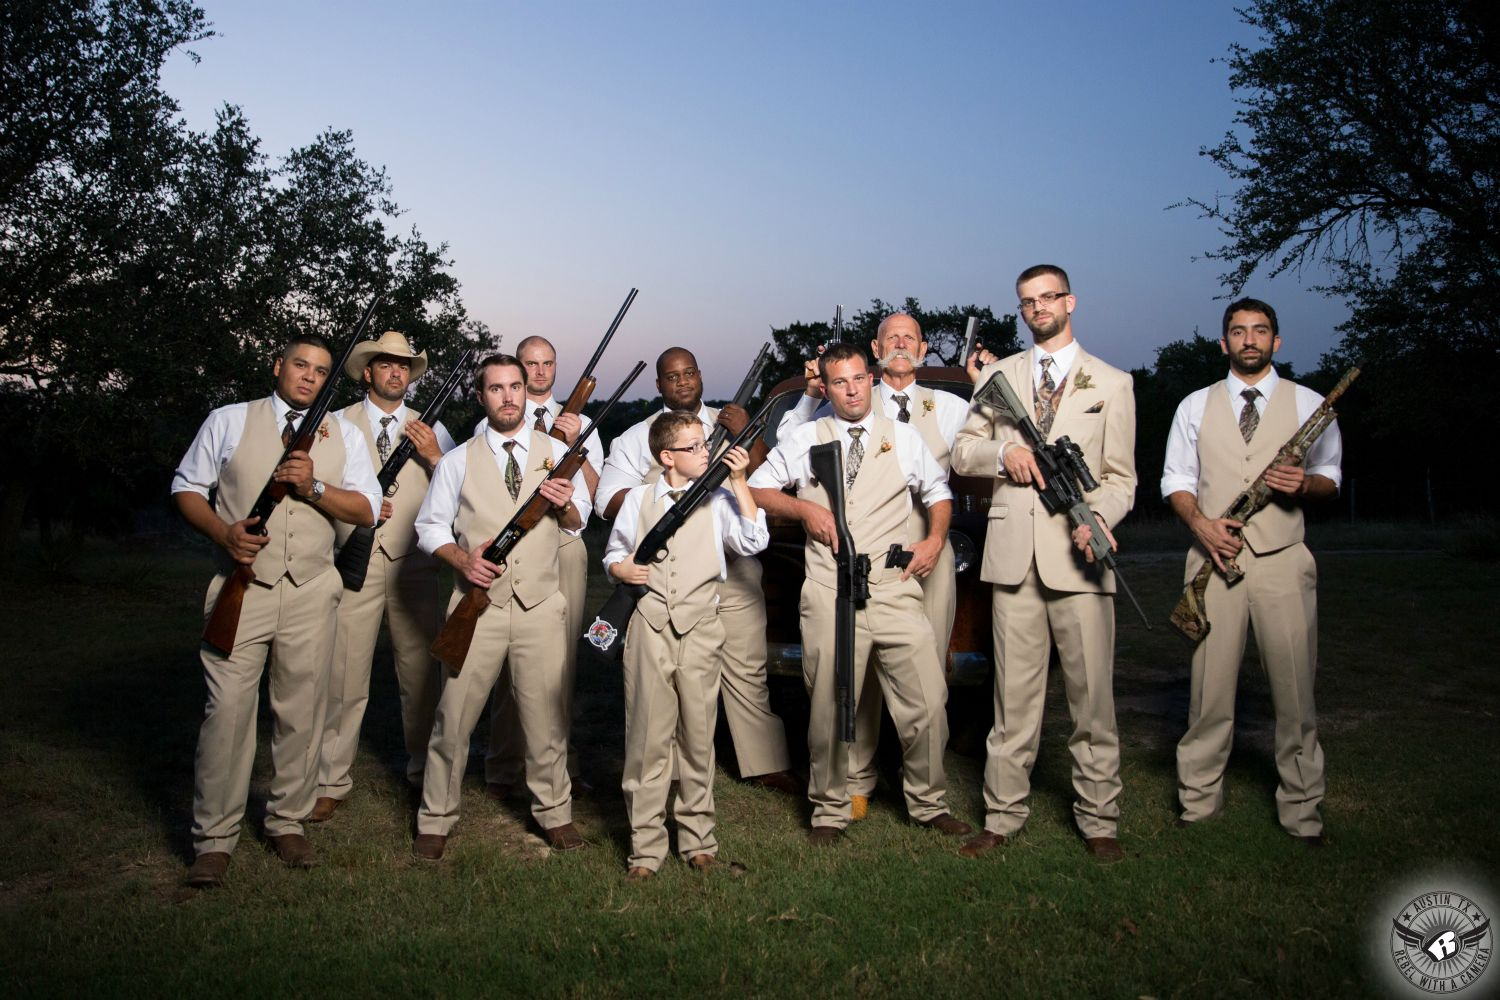 wedding photo of groom and groomsmen in beige suits with camo vests and ties hold rifles